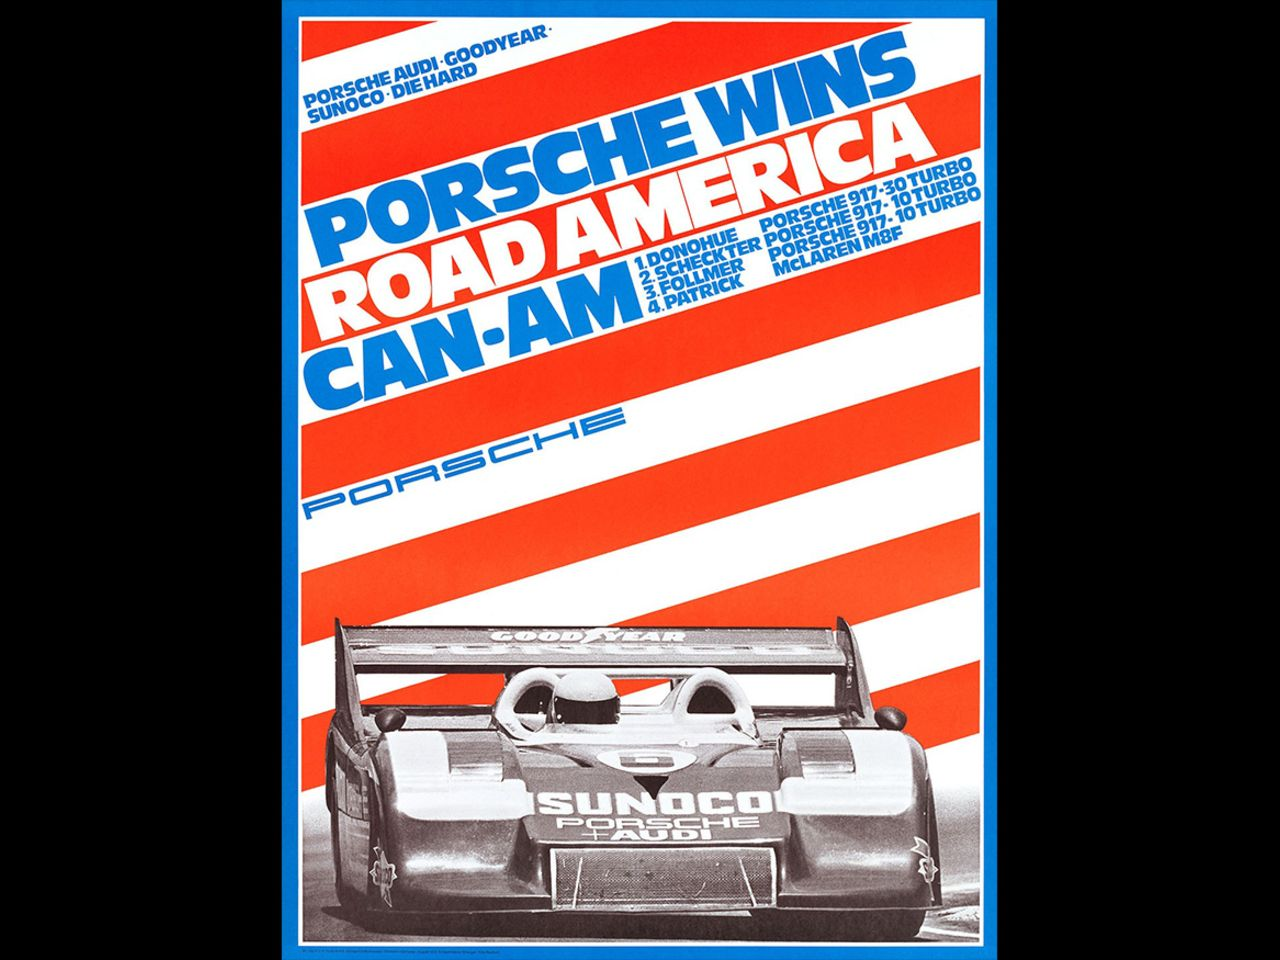 Strenger consistently found new ways to visualize sportiness and speed. This poster celebrates the ultimate race car of 1973, the Porsche 917/30, and its unparalleled win at the Road America Can-Am.